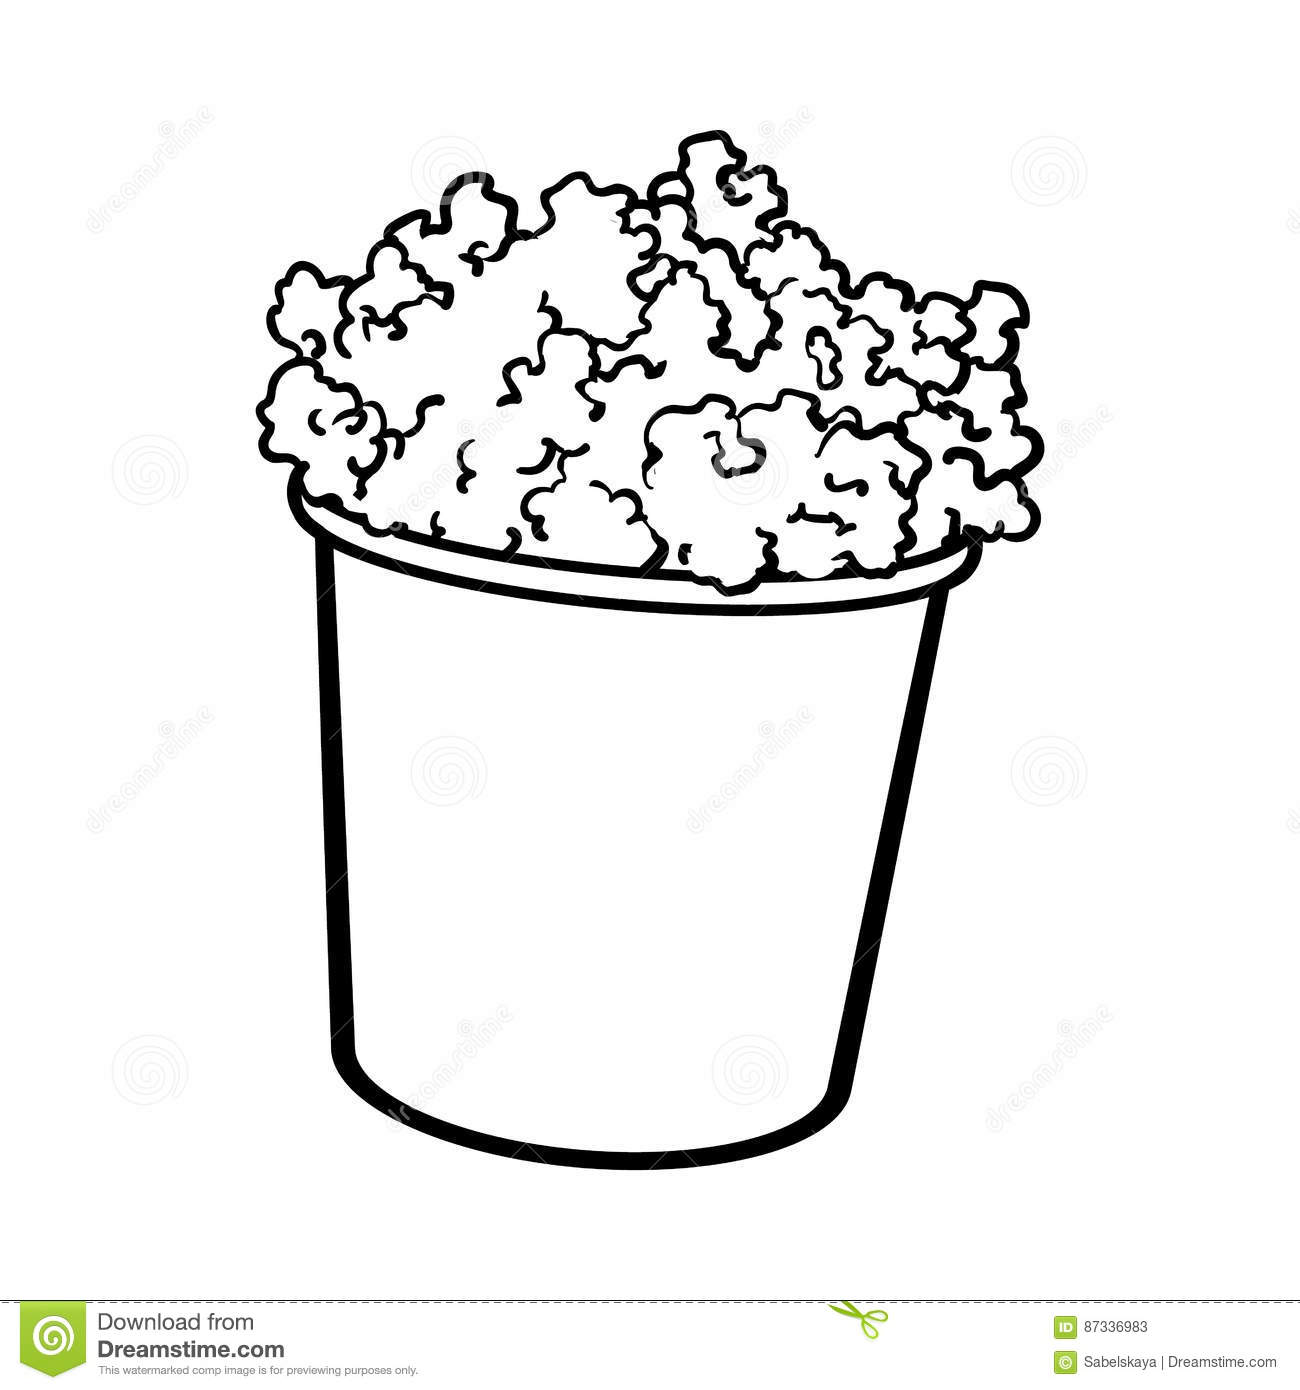 Illustation Vector Hand Drawn Doodle Of Movie Theater With Monster..  Royalty Free Cliparts, Vectors, And Stock Illustration. Image 70034513.